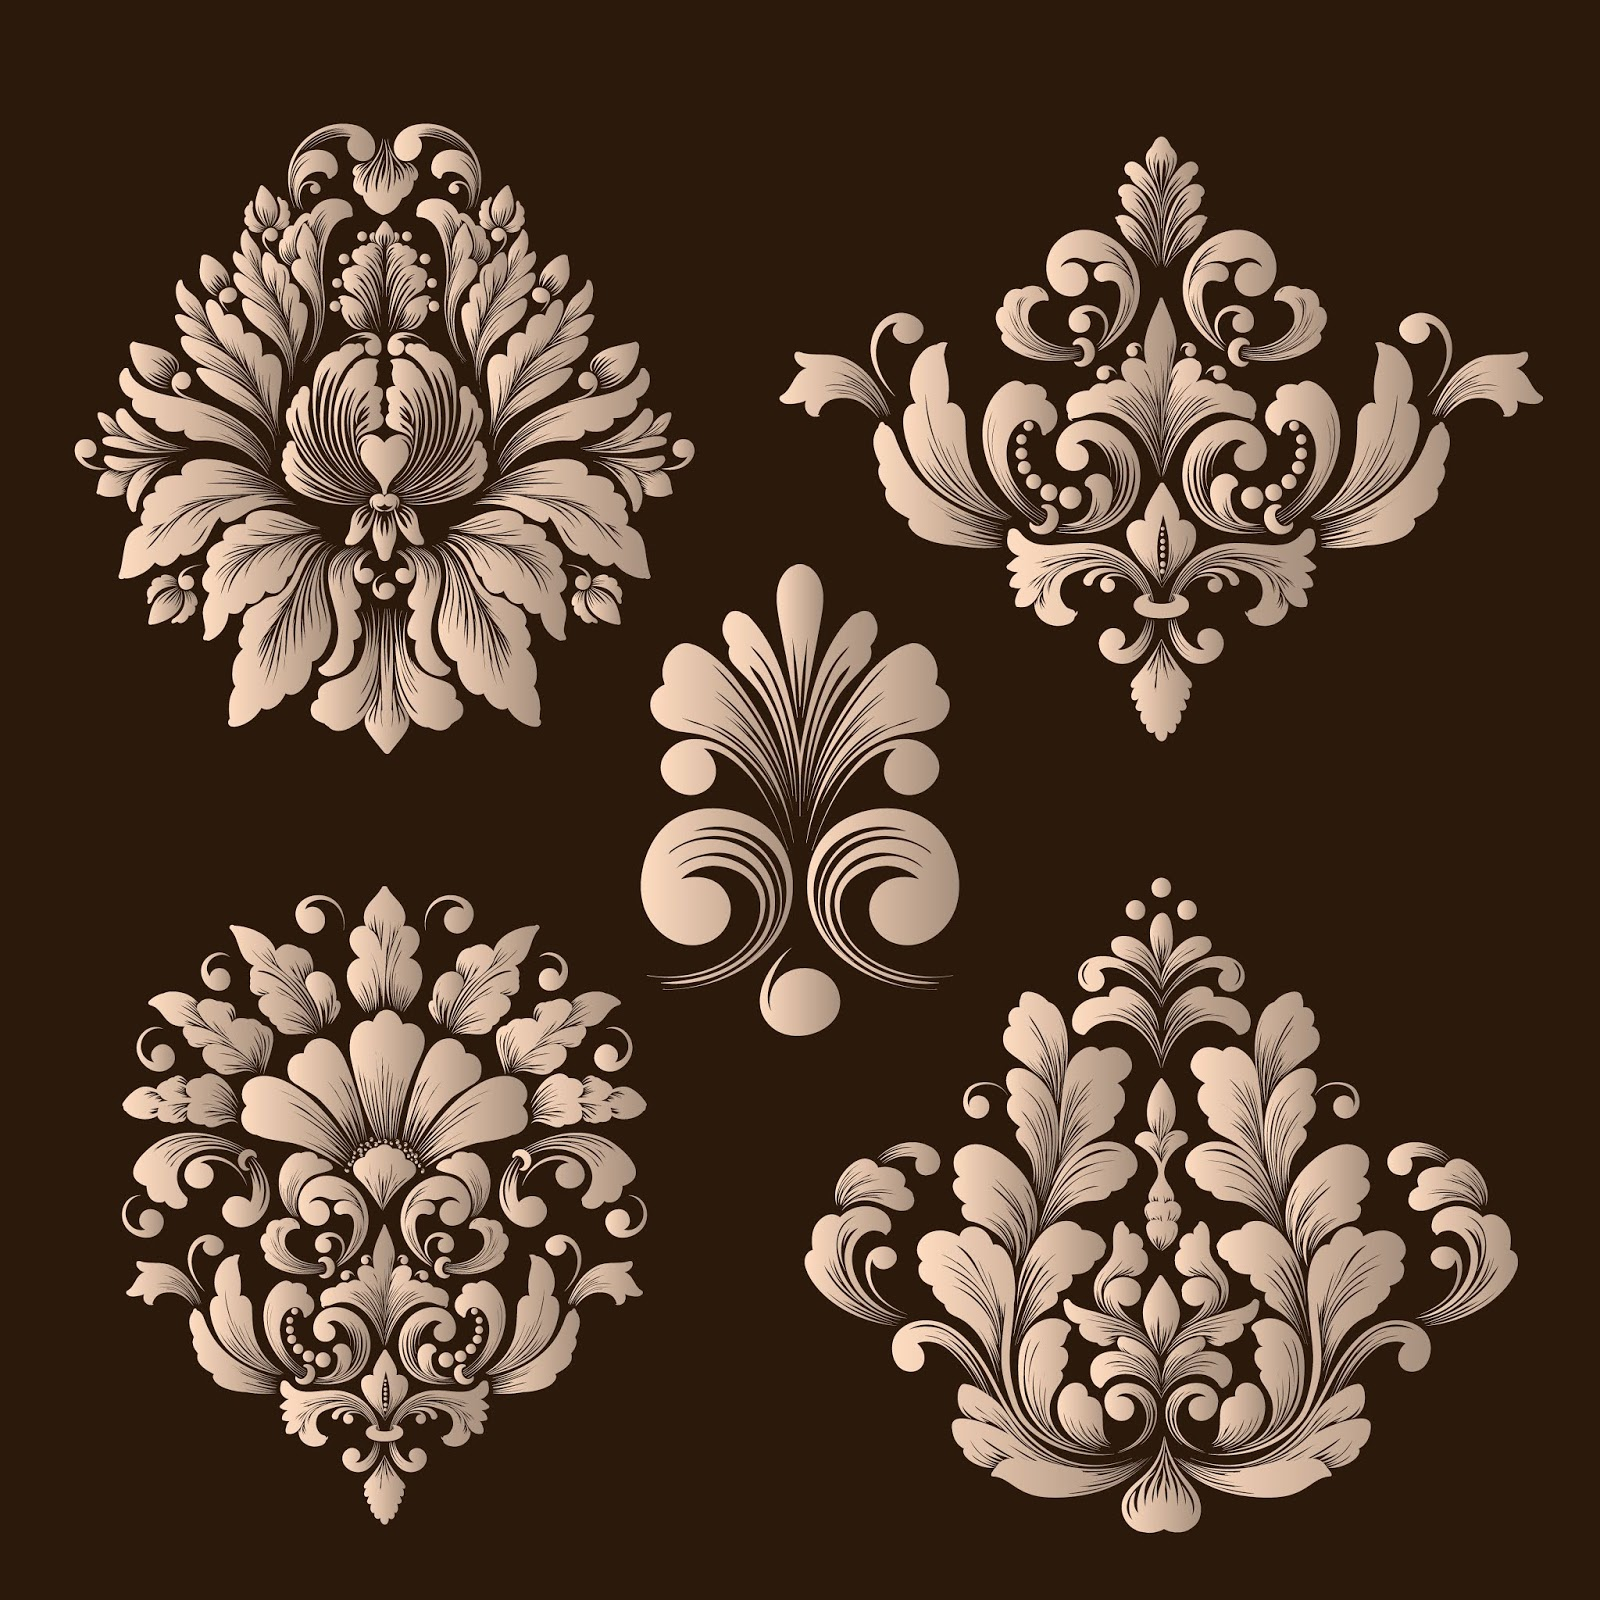 Vector Set Damask Ornamental Elements Free Download Vector CDR, AI, EPS and PNG Formats